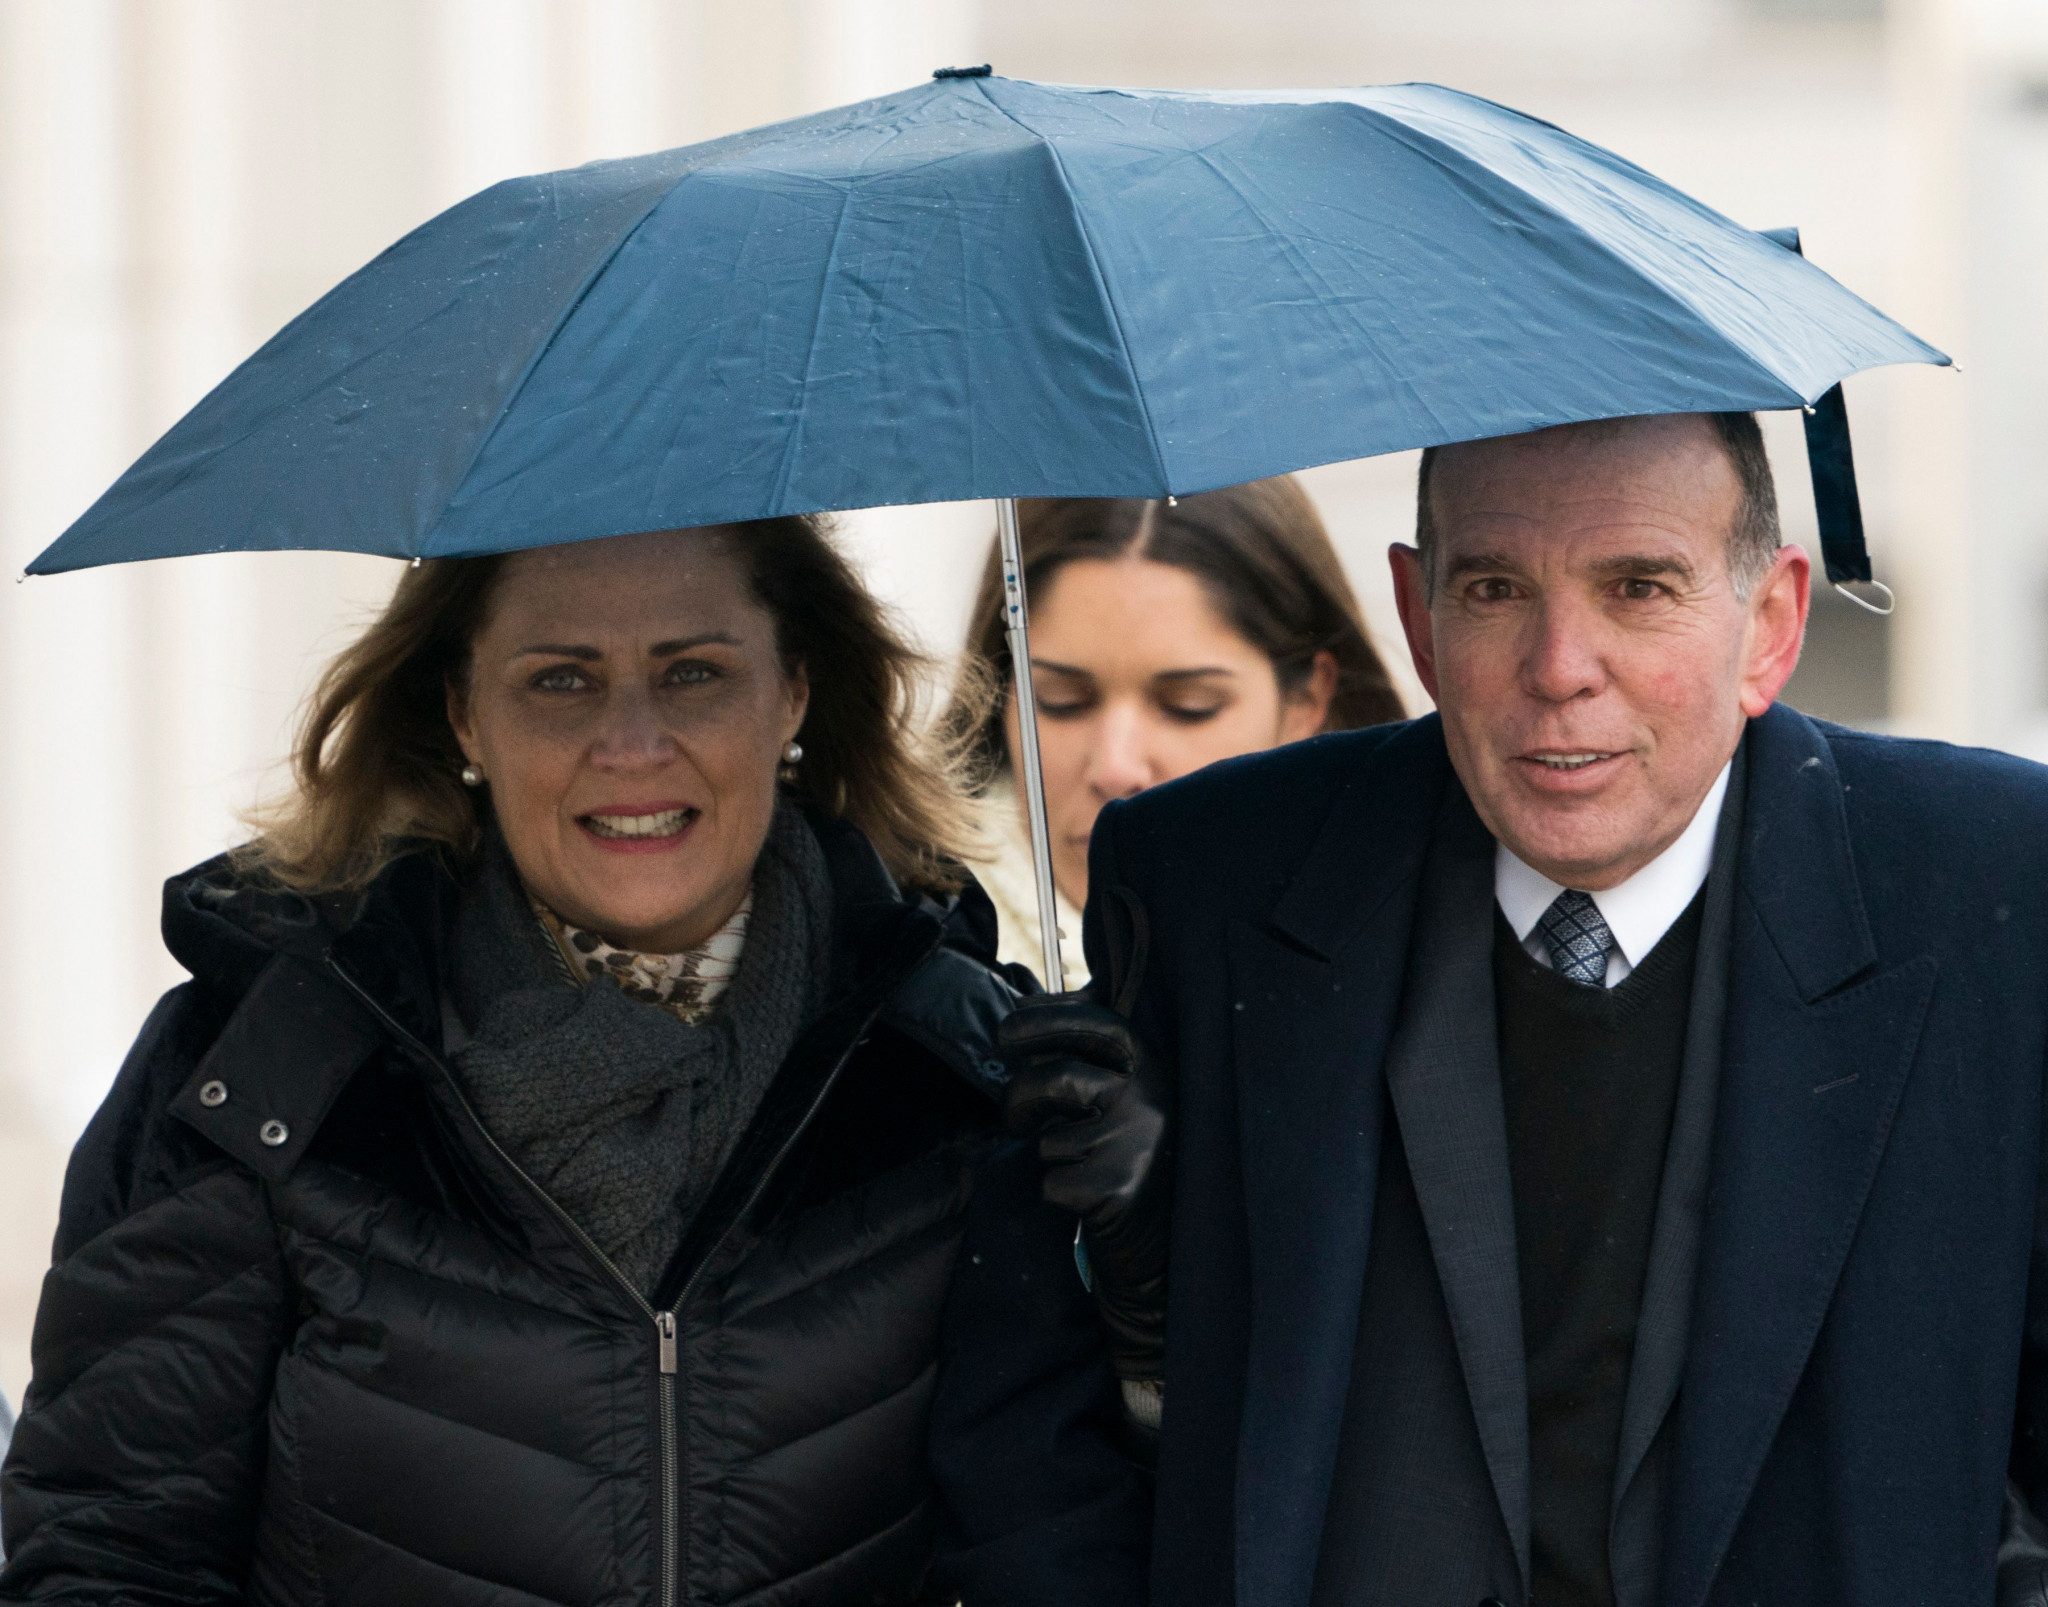 Former FIFA vice-president Napout and Marin convicted of corruption charges